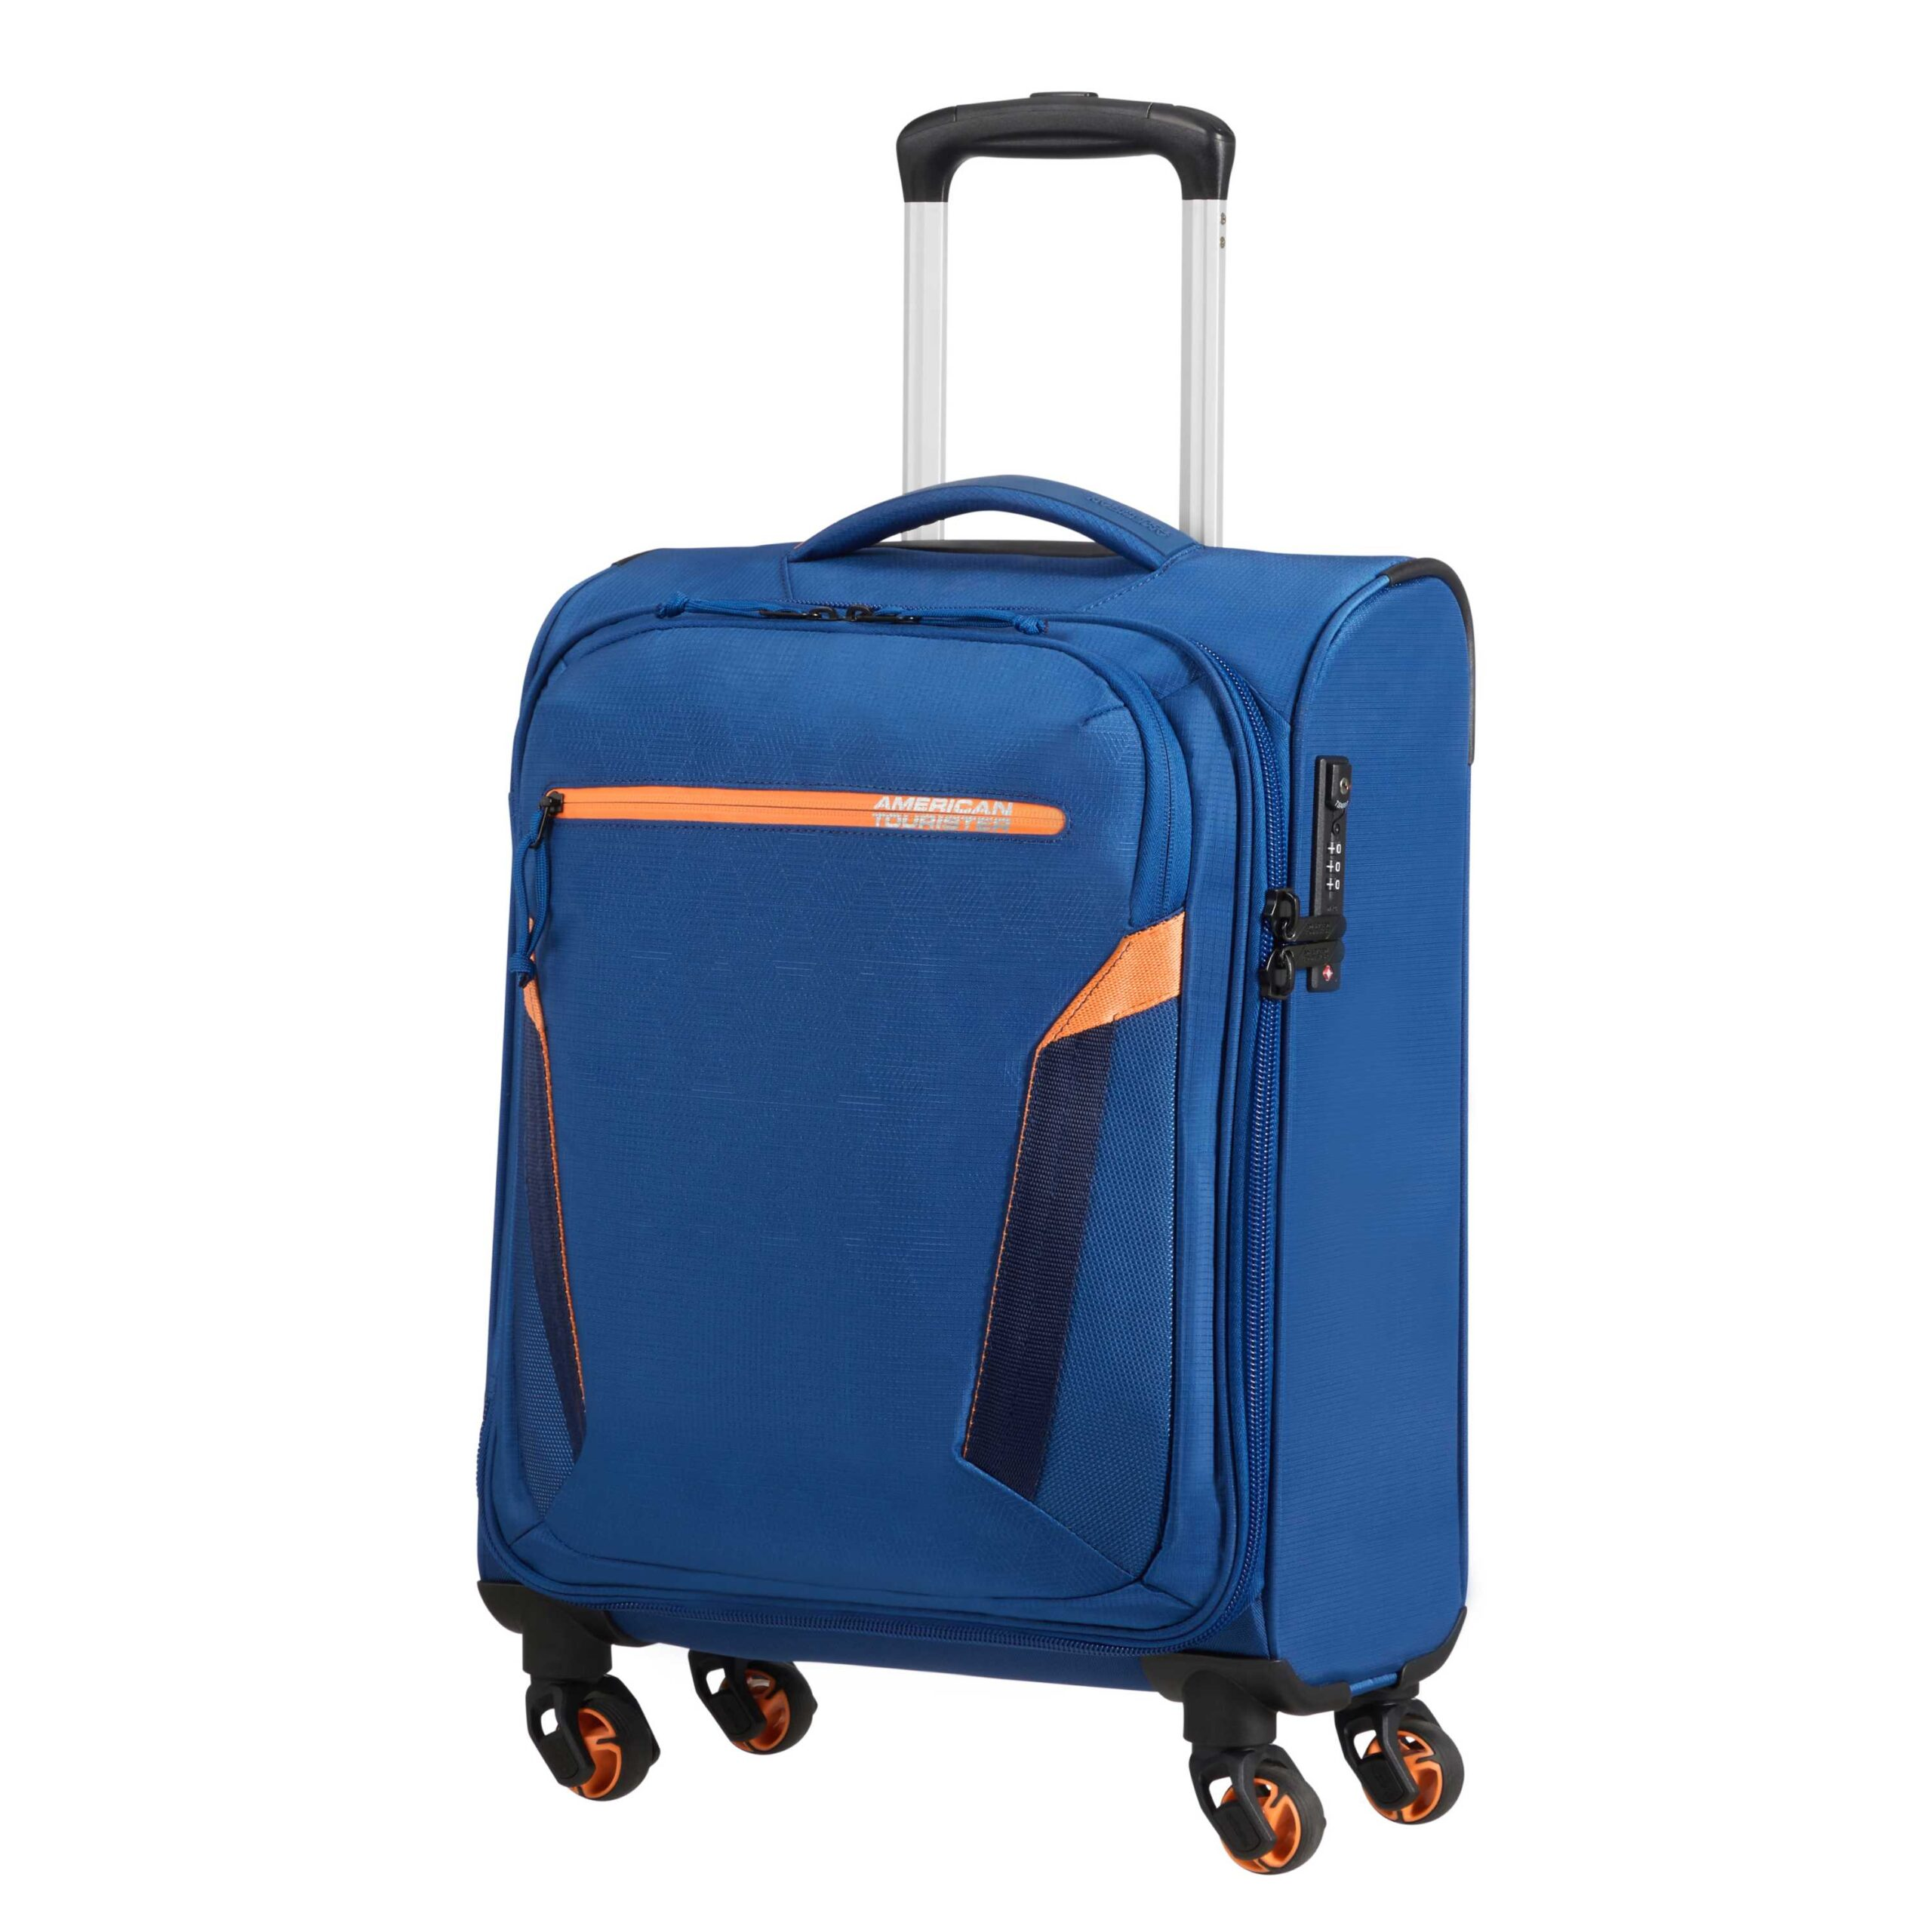 American Tourister At Eco Spinner 4 Wheels